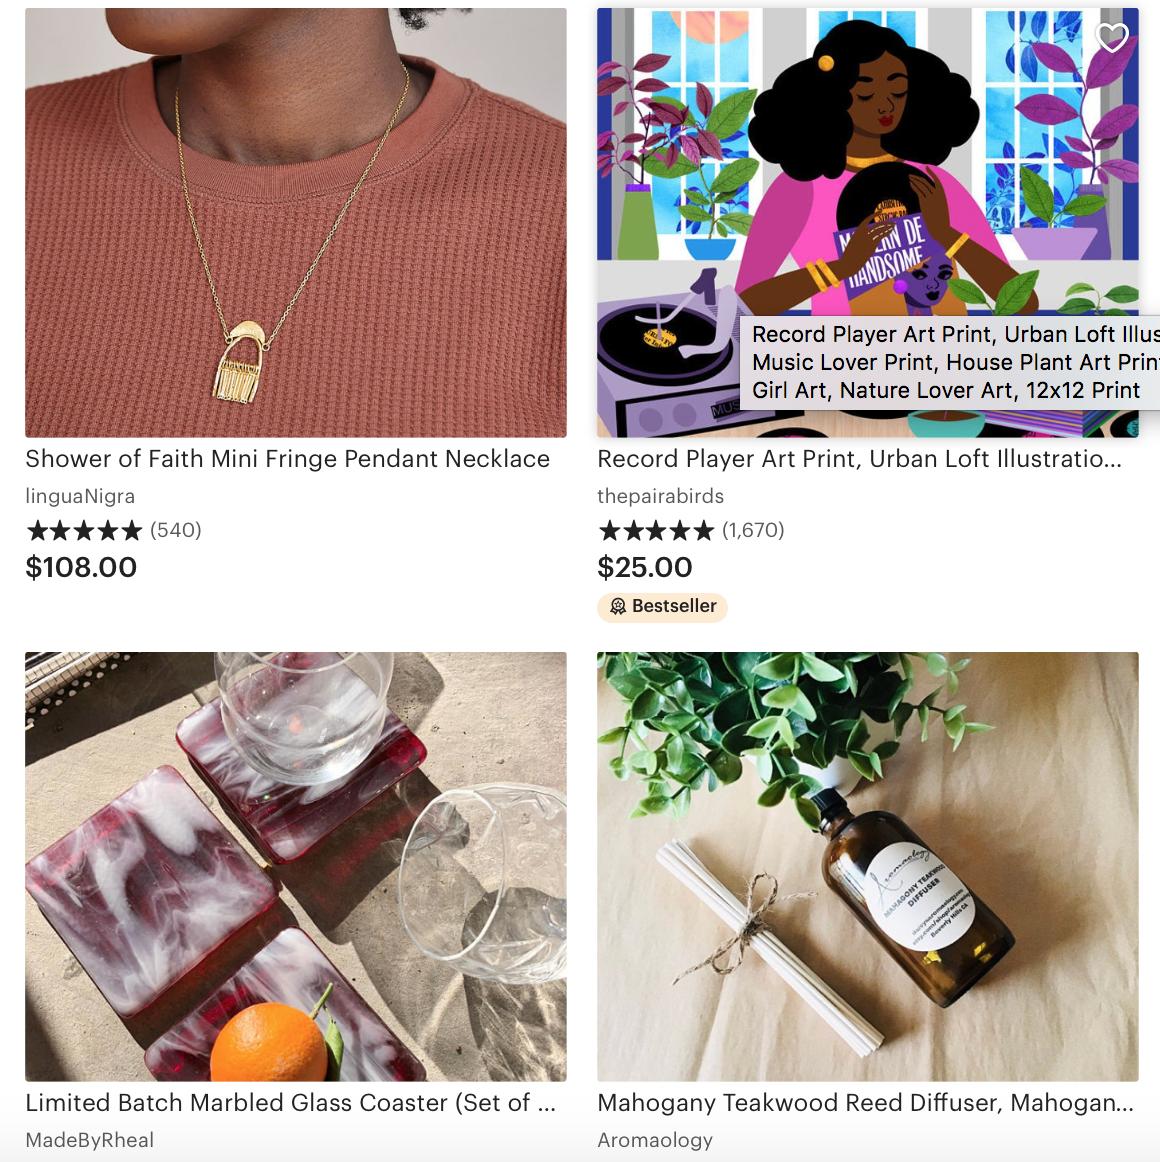 Best sizing for Etsy listing photos: Four thumbnail shots from Etsy featuring Black-owned shops